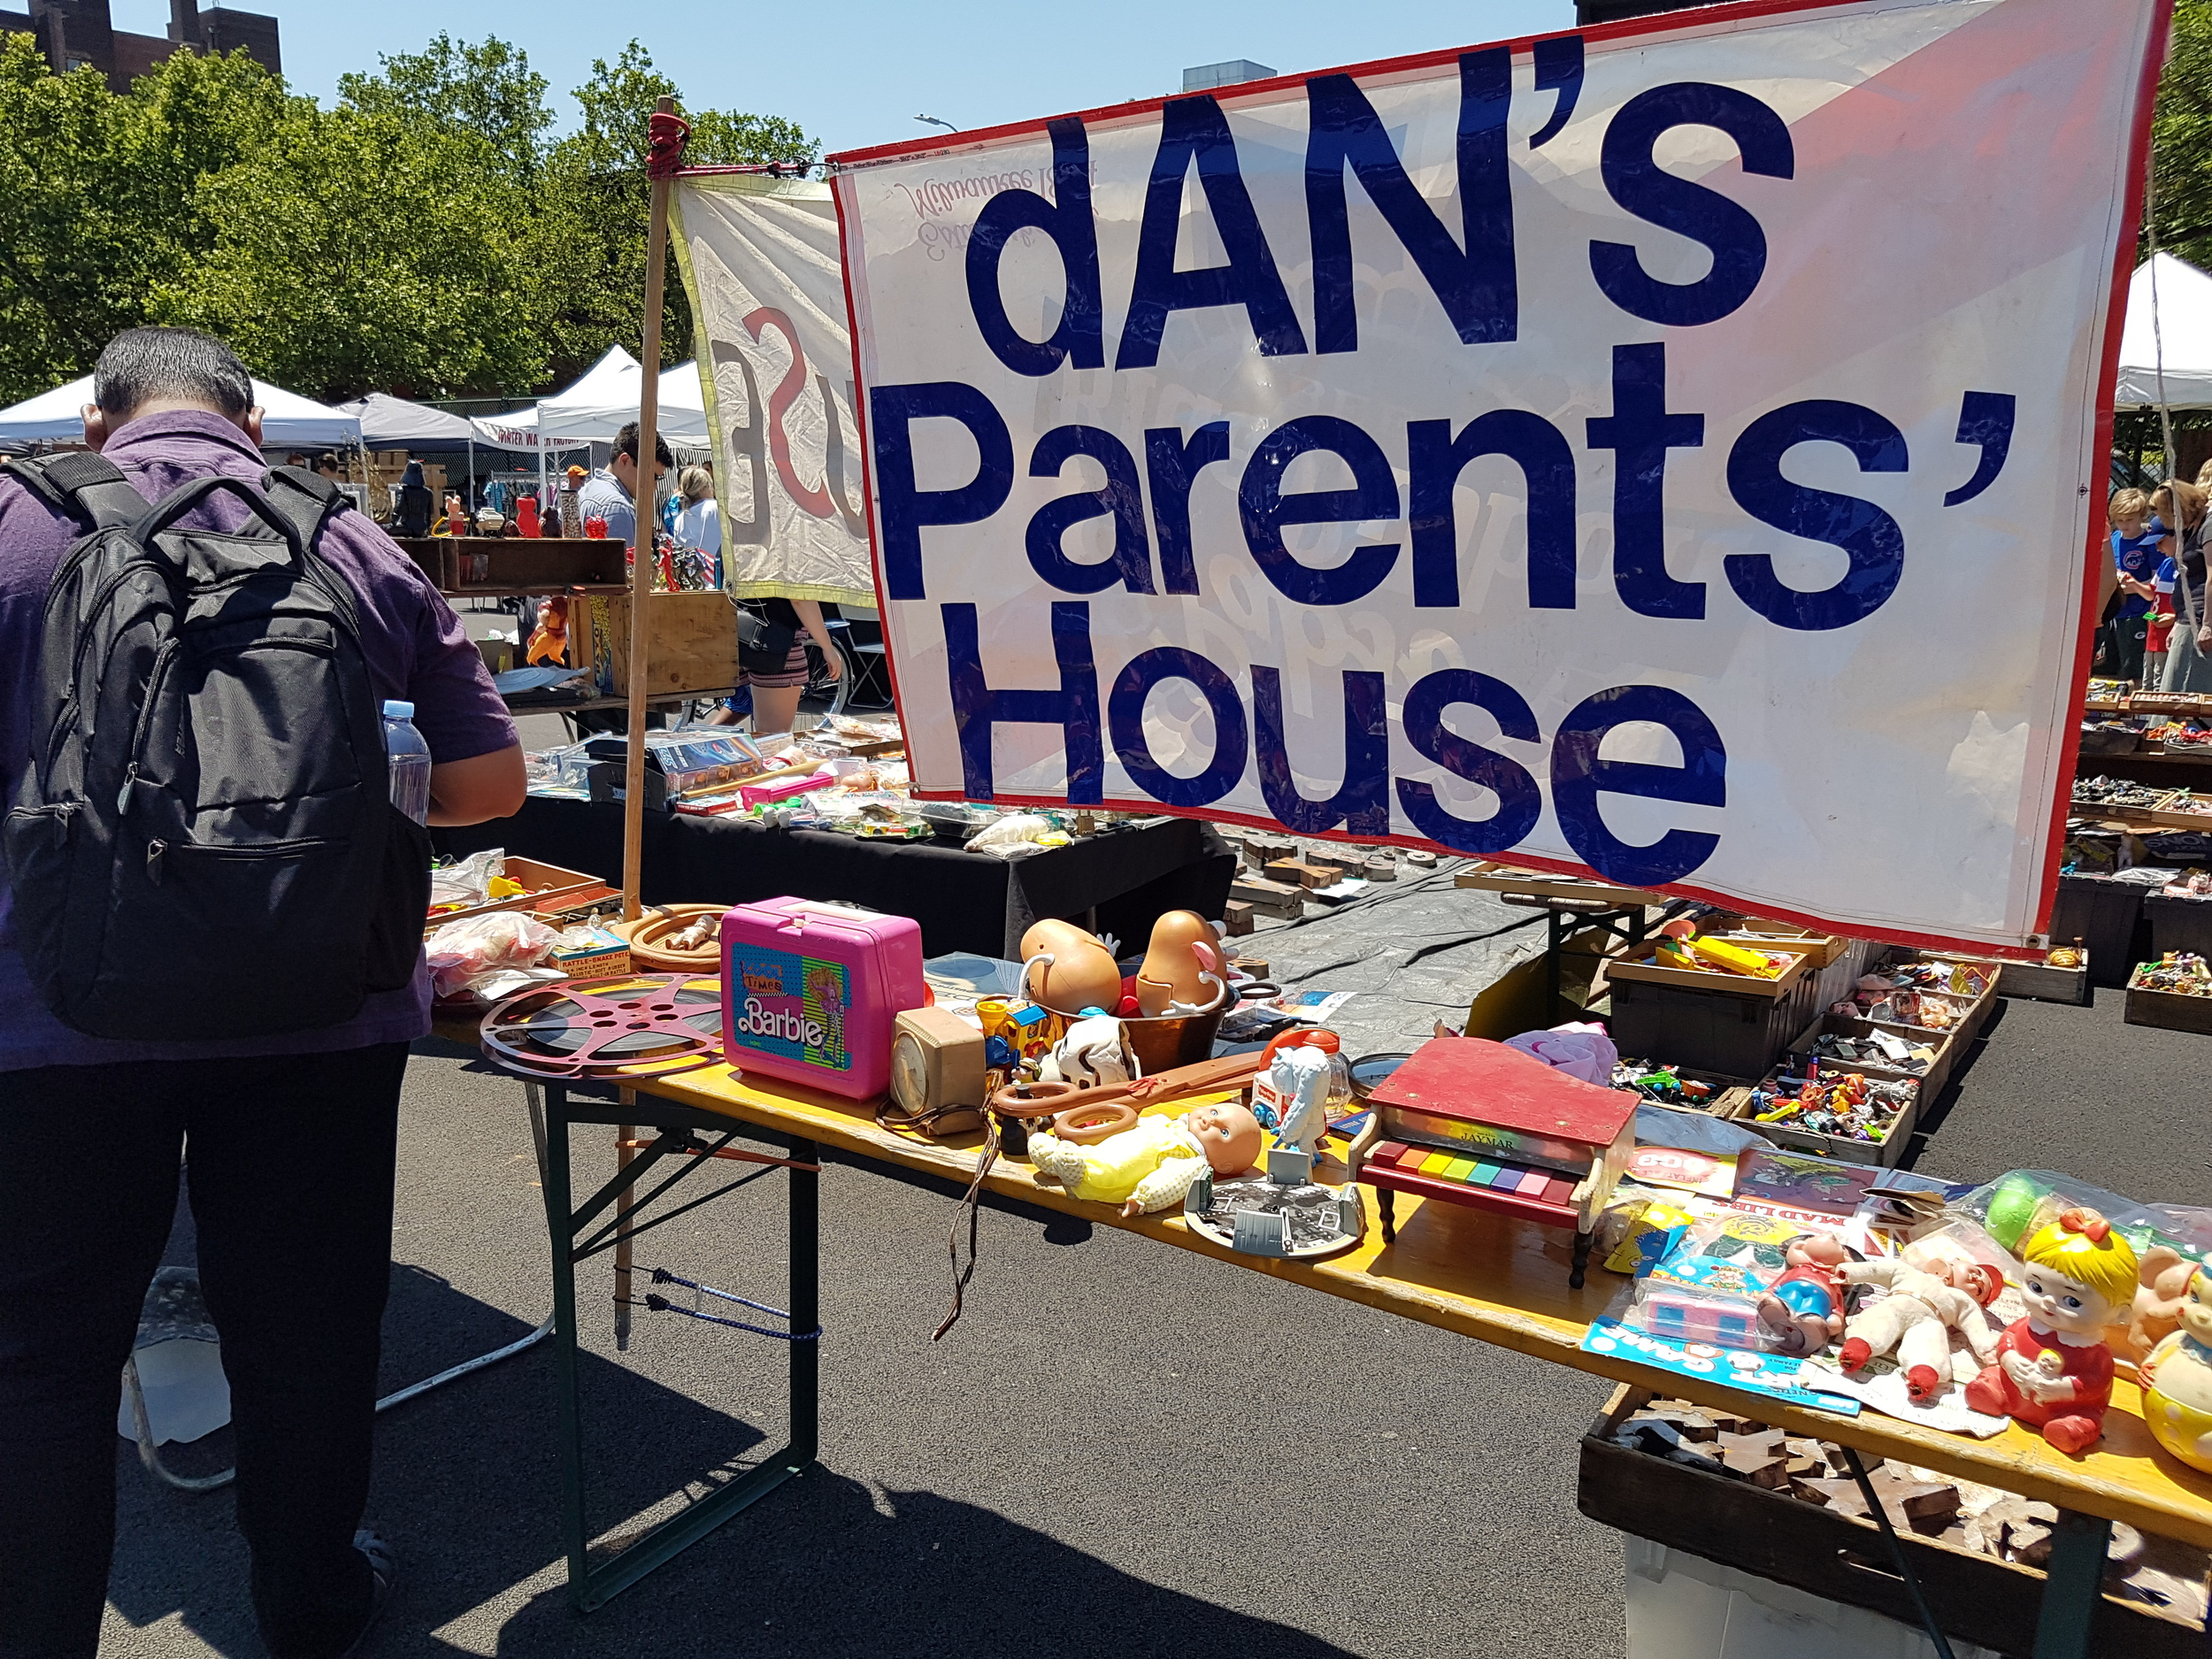 Dan's Parents' House is situated near the centre of the market and gets a lot of attention from weekend shoppers. (Photo credit: Jane Adey)